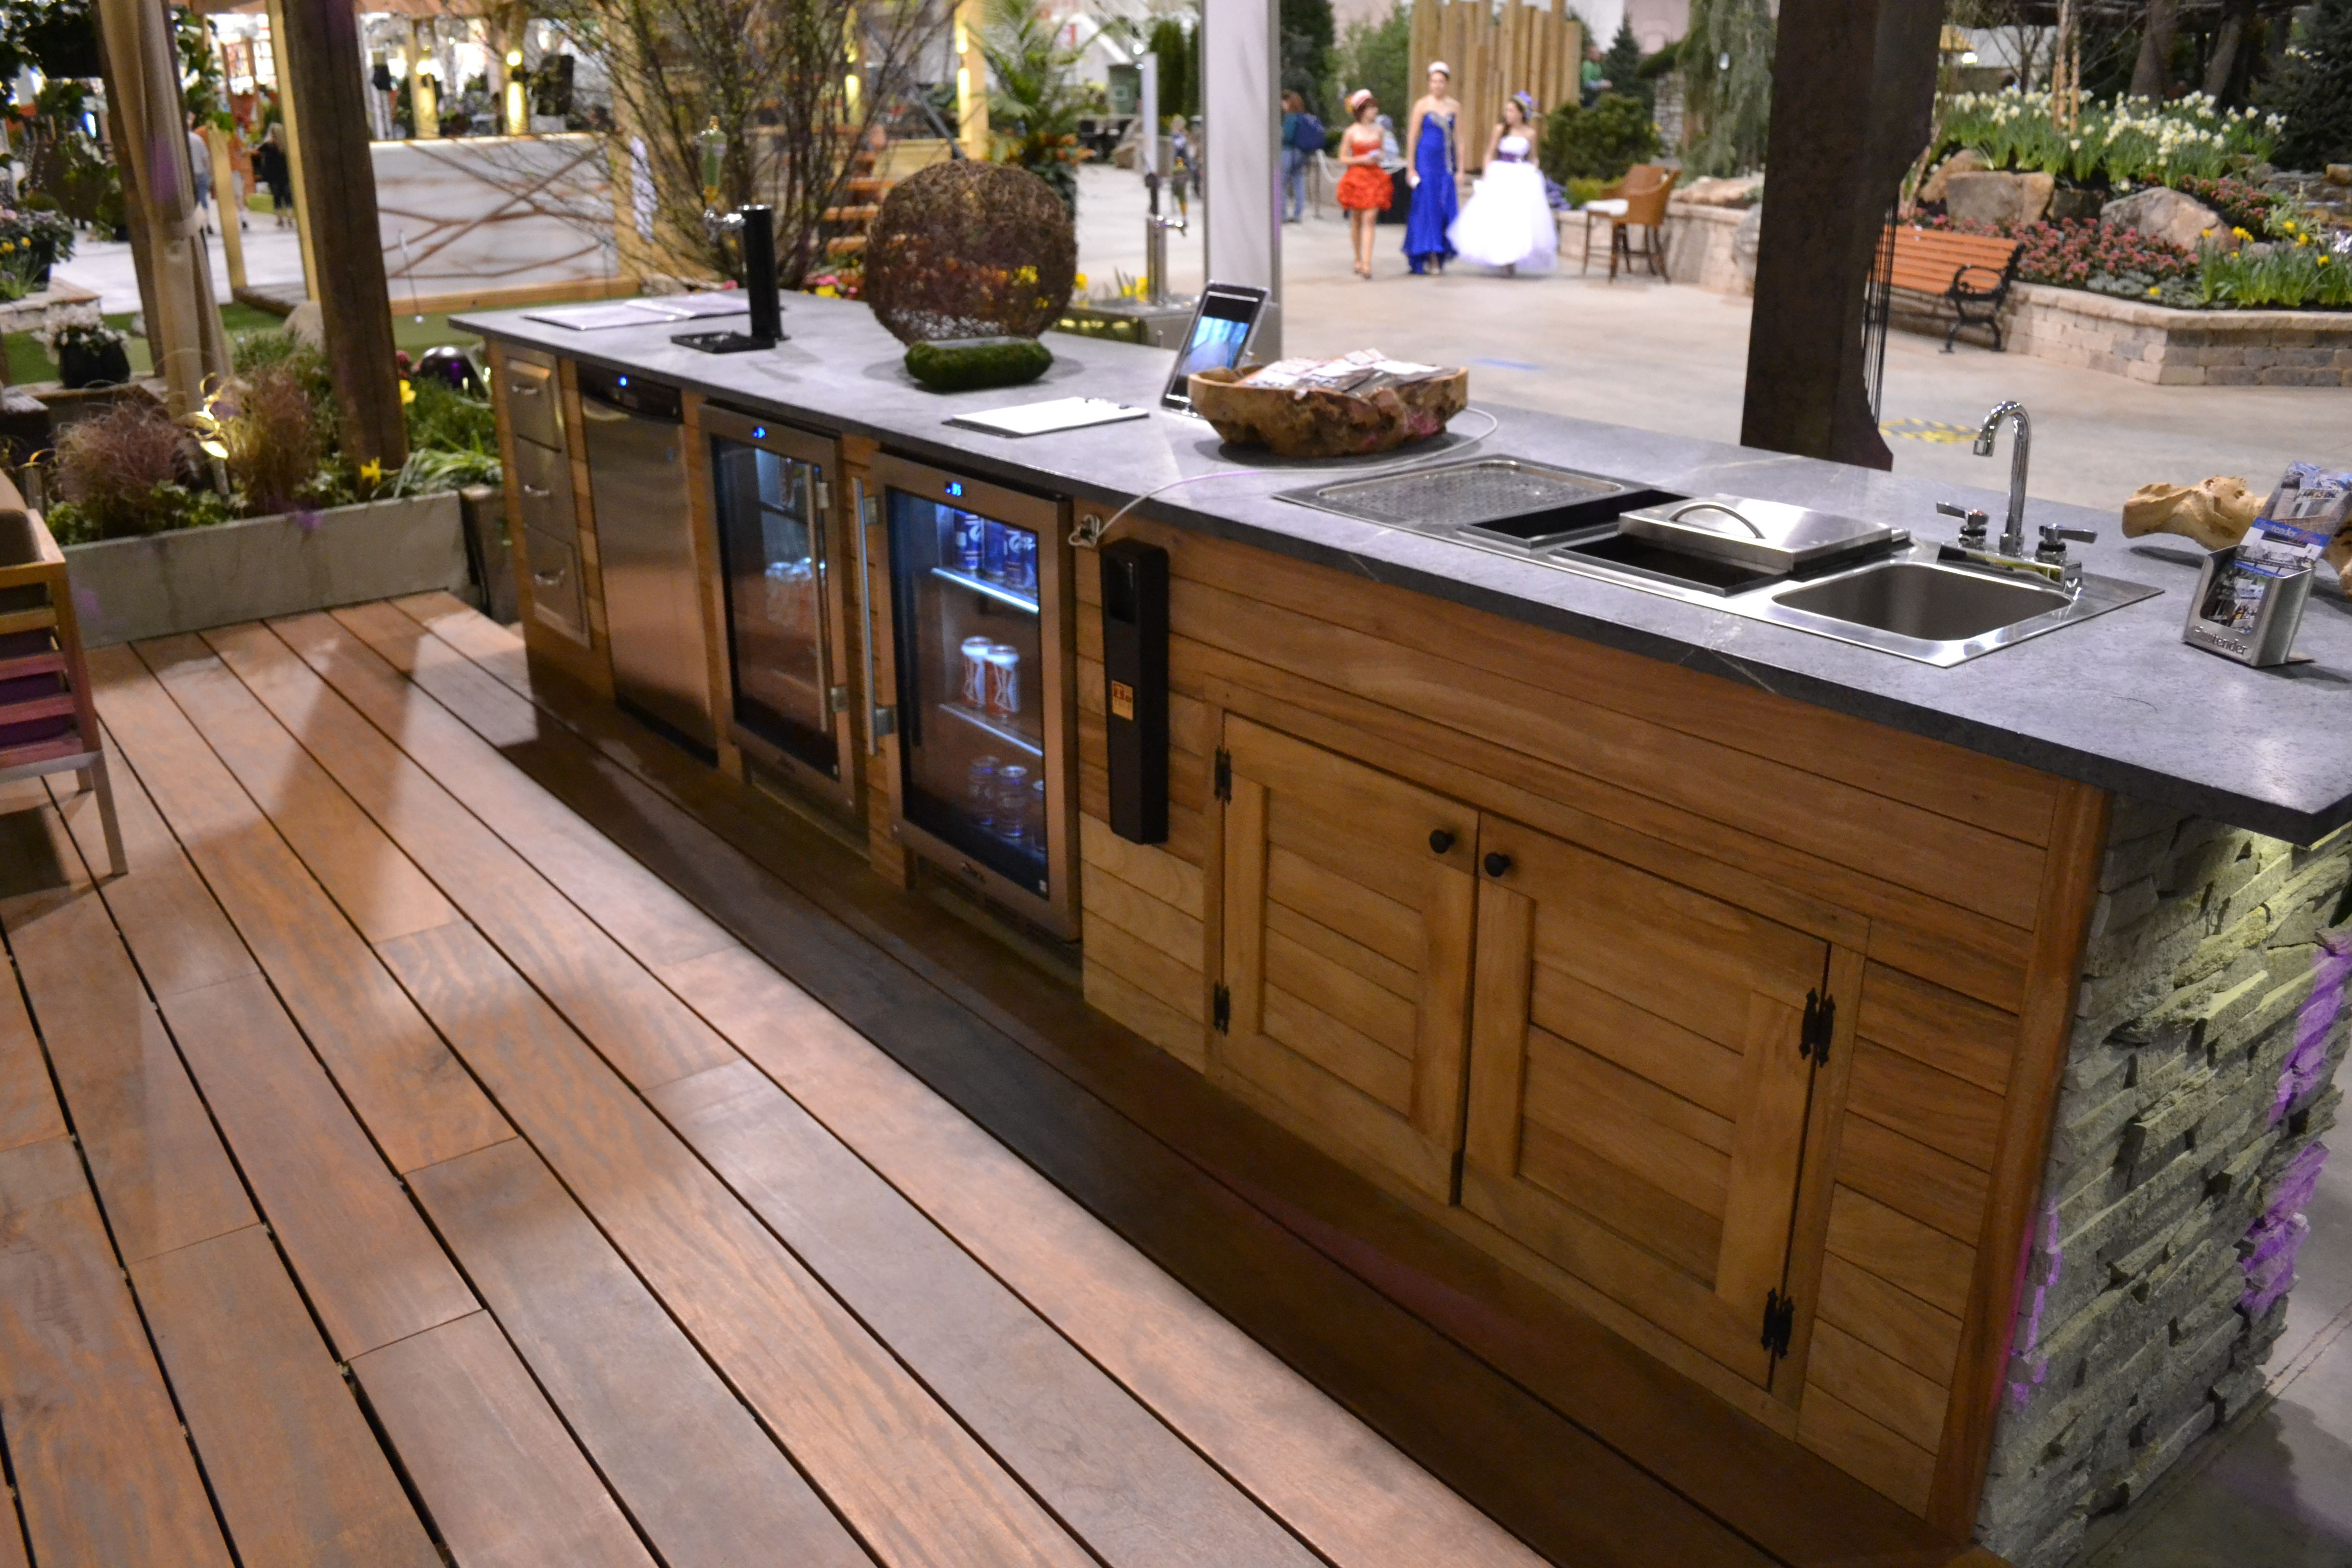 chicago - outdoor kitchen: glastender sink with condiment tray and